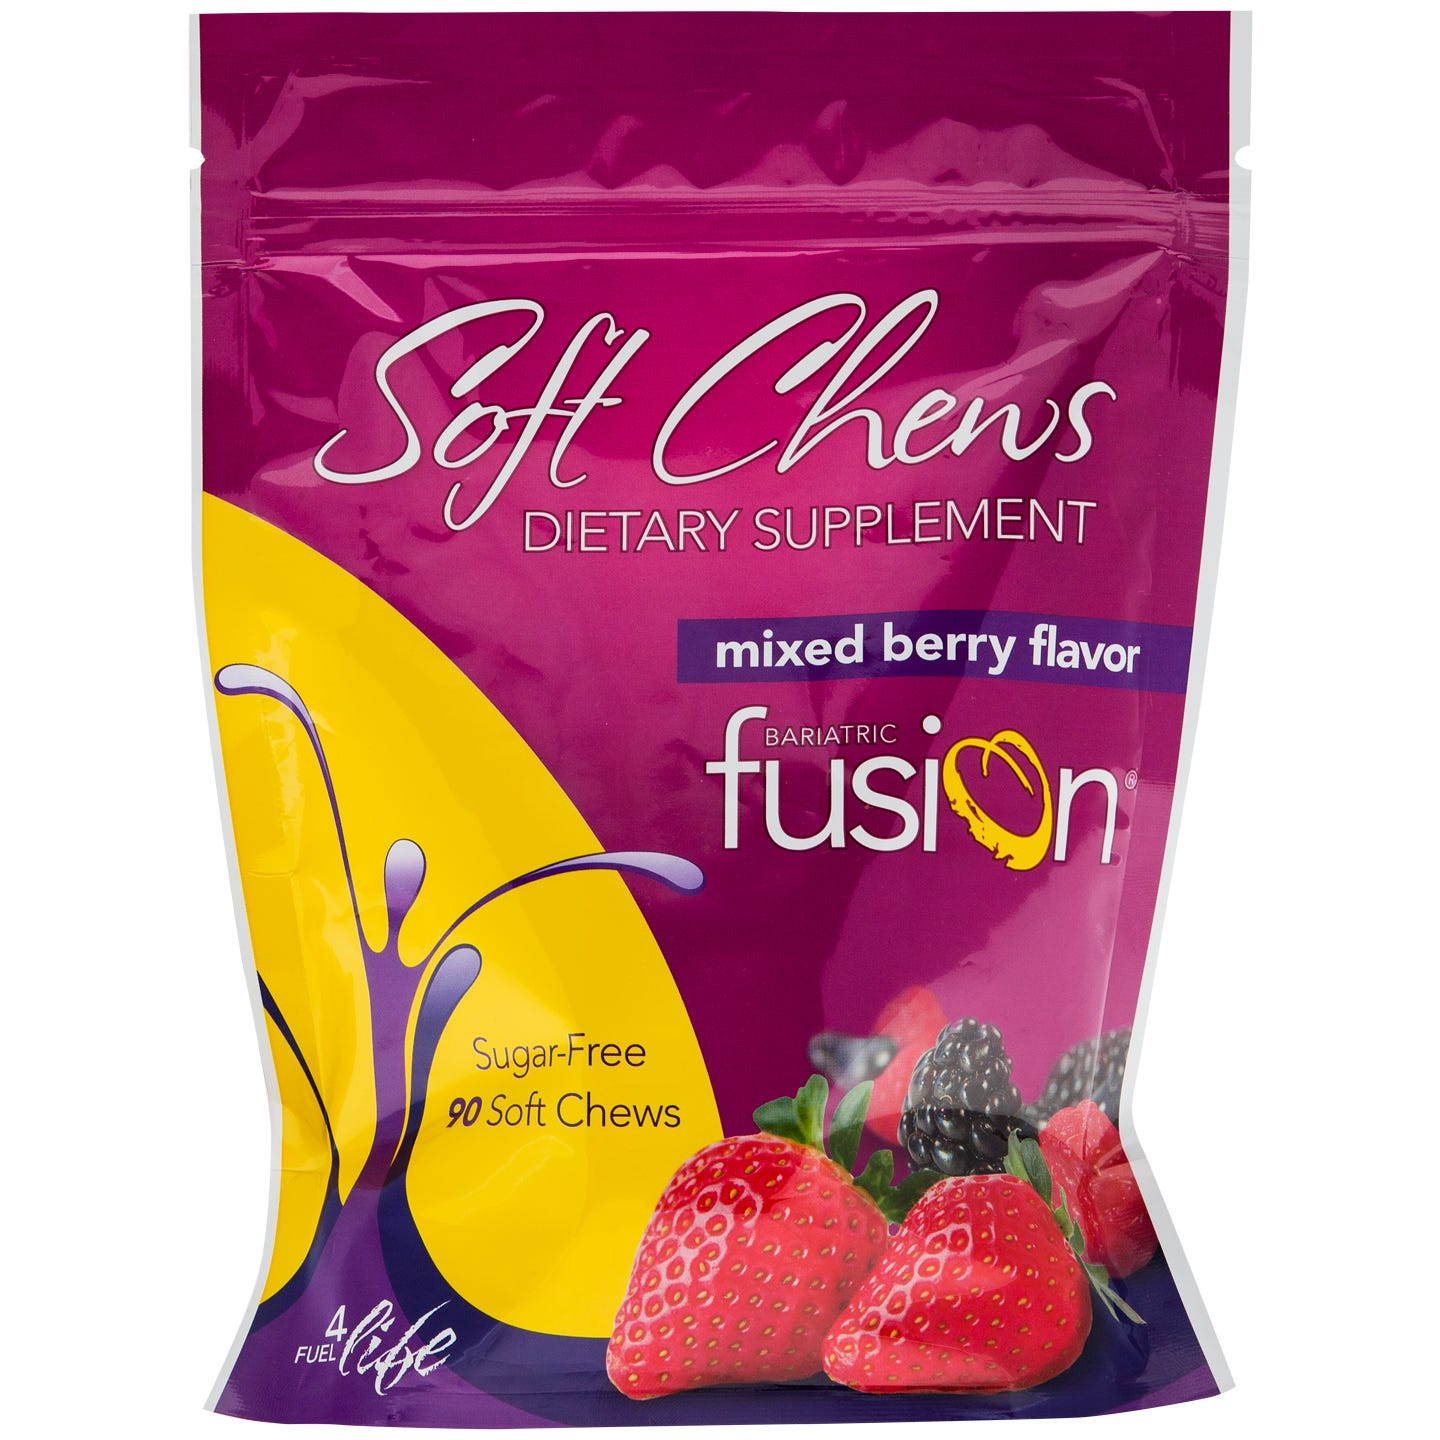 MultiVitamin Soft Chews Mixed Berry (90 ct) – Bariatric Fusion